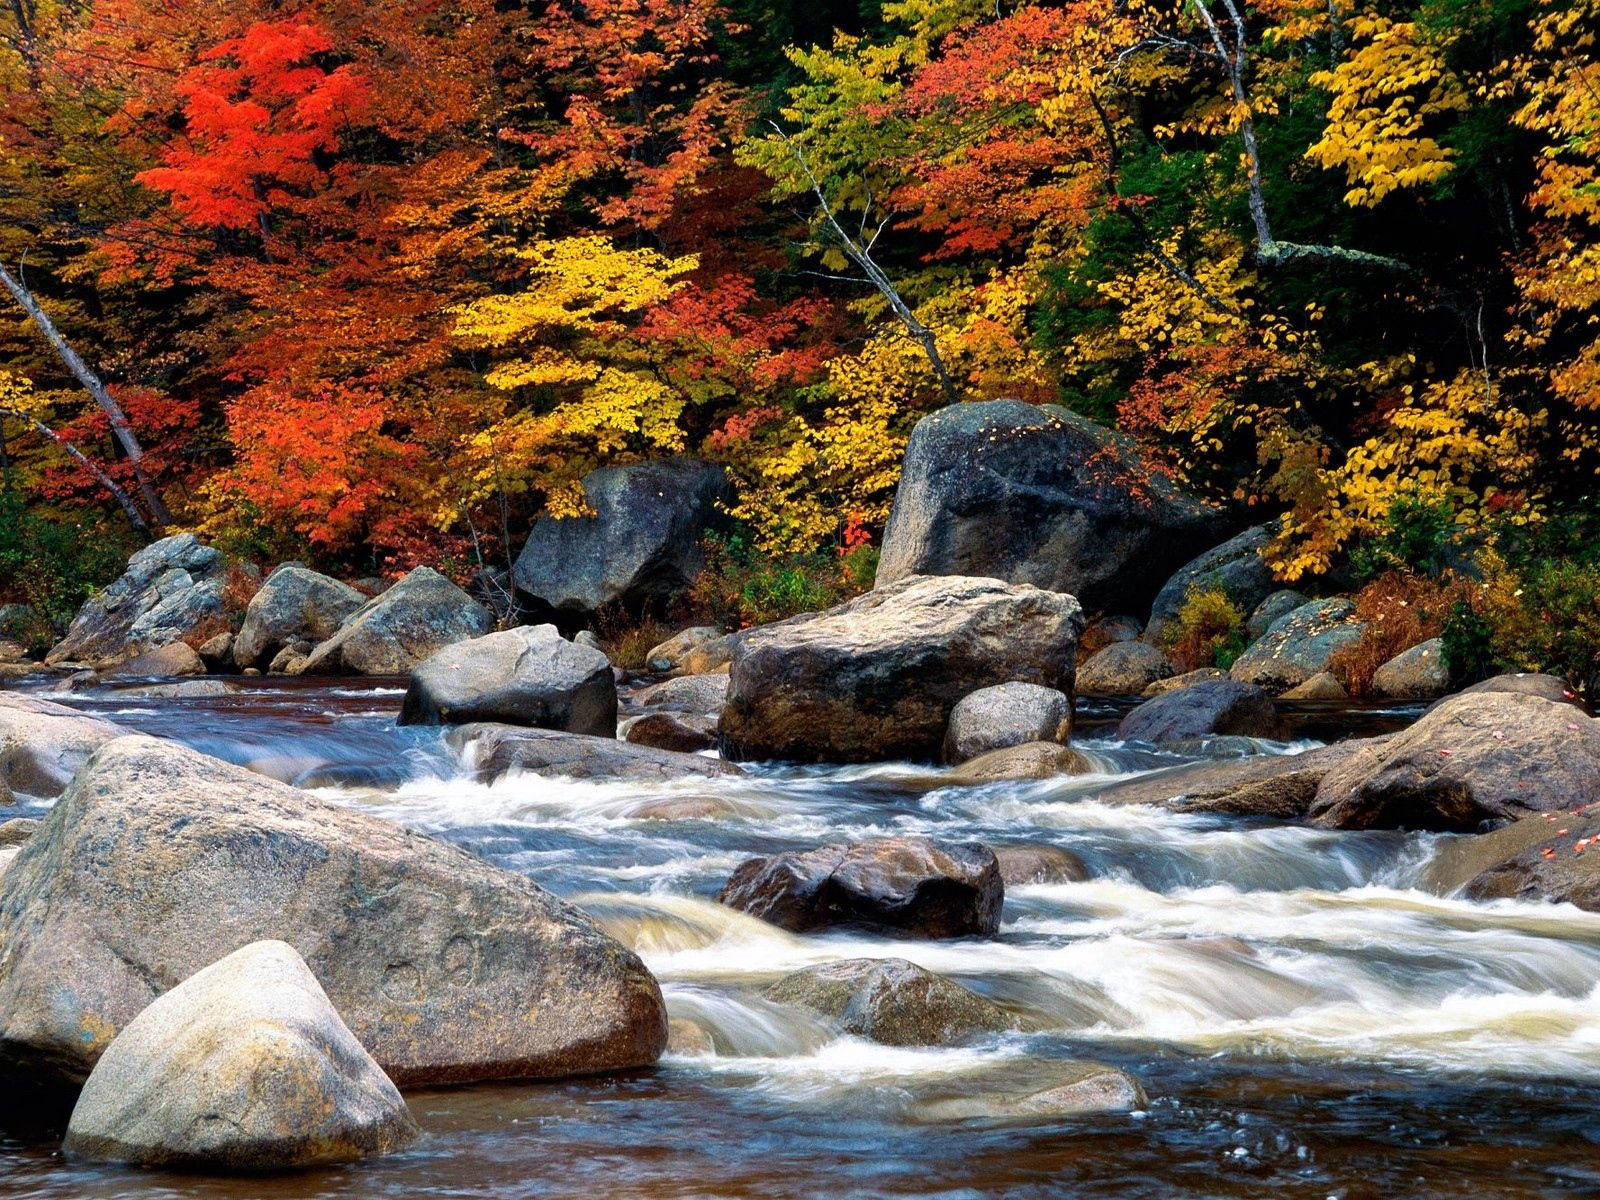 58325 download wallpaper Nature, Water, Stones, Autumn, Leaves, Flow, Village, Stream, Gurgling, Murmur, Villages screensavers and pictures for free